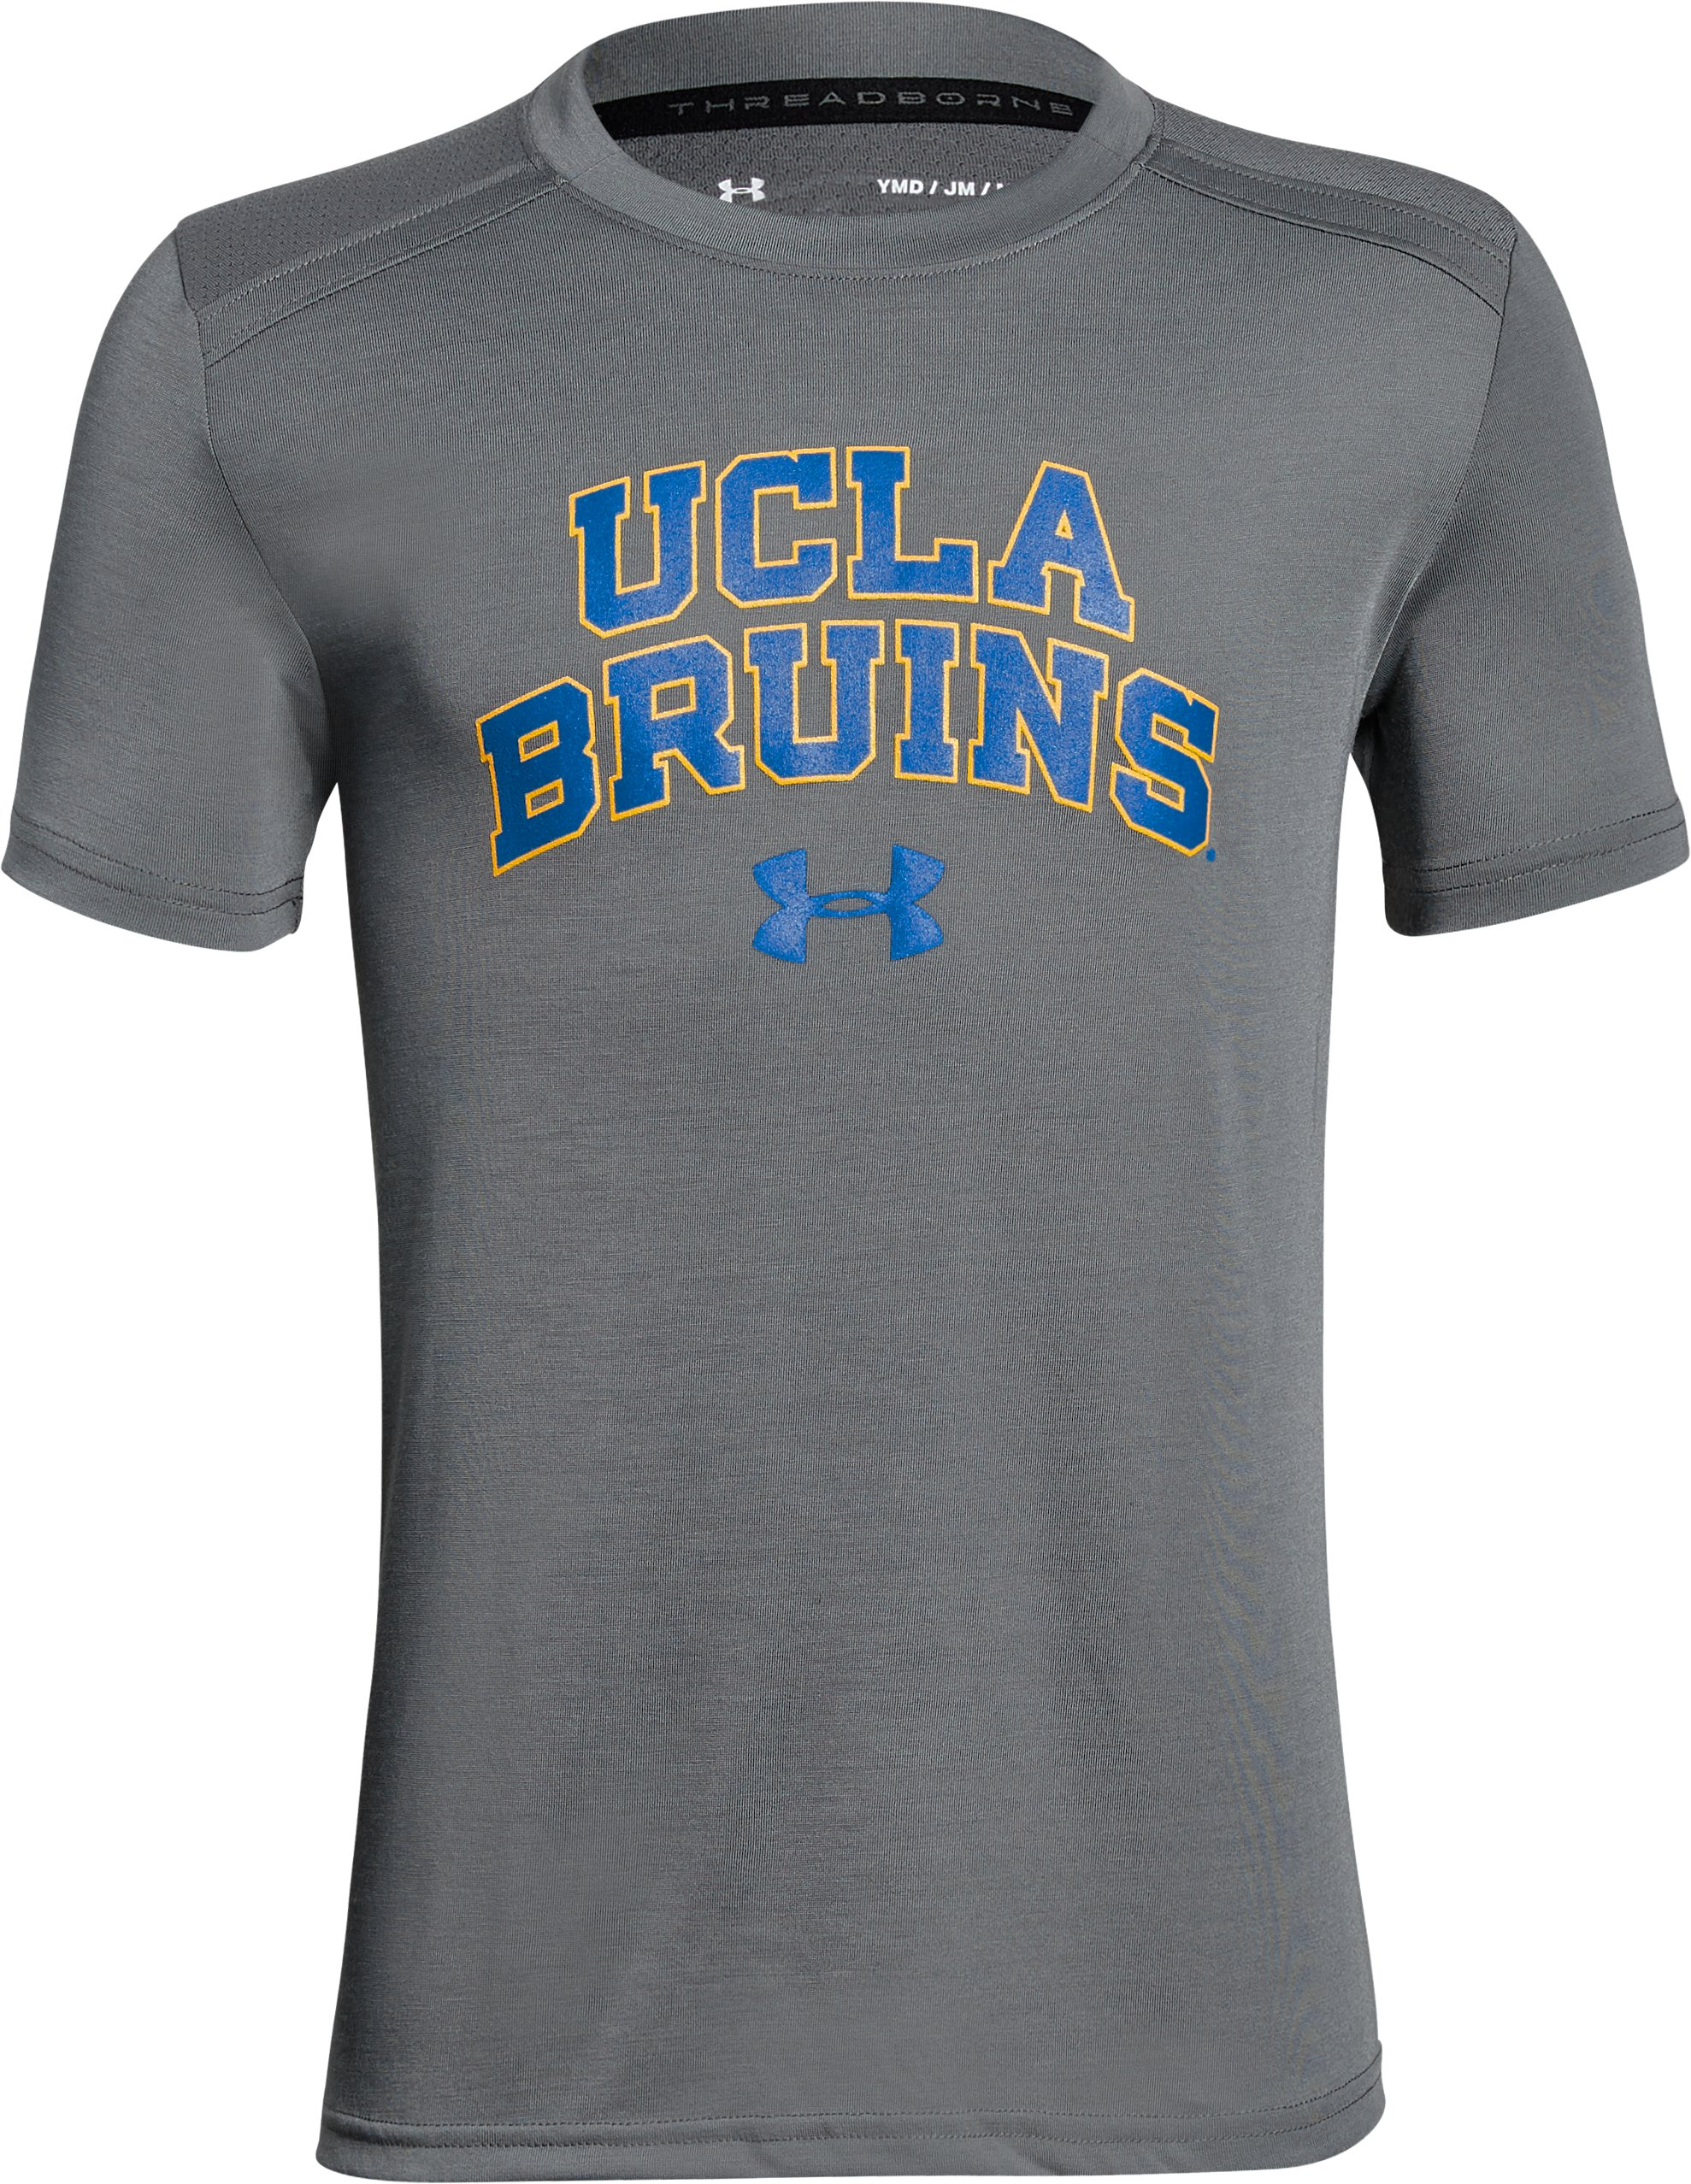 Boys' UCLA T-Shirt, Graphite, undefined